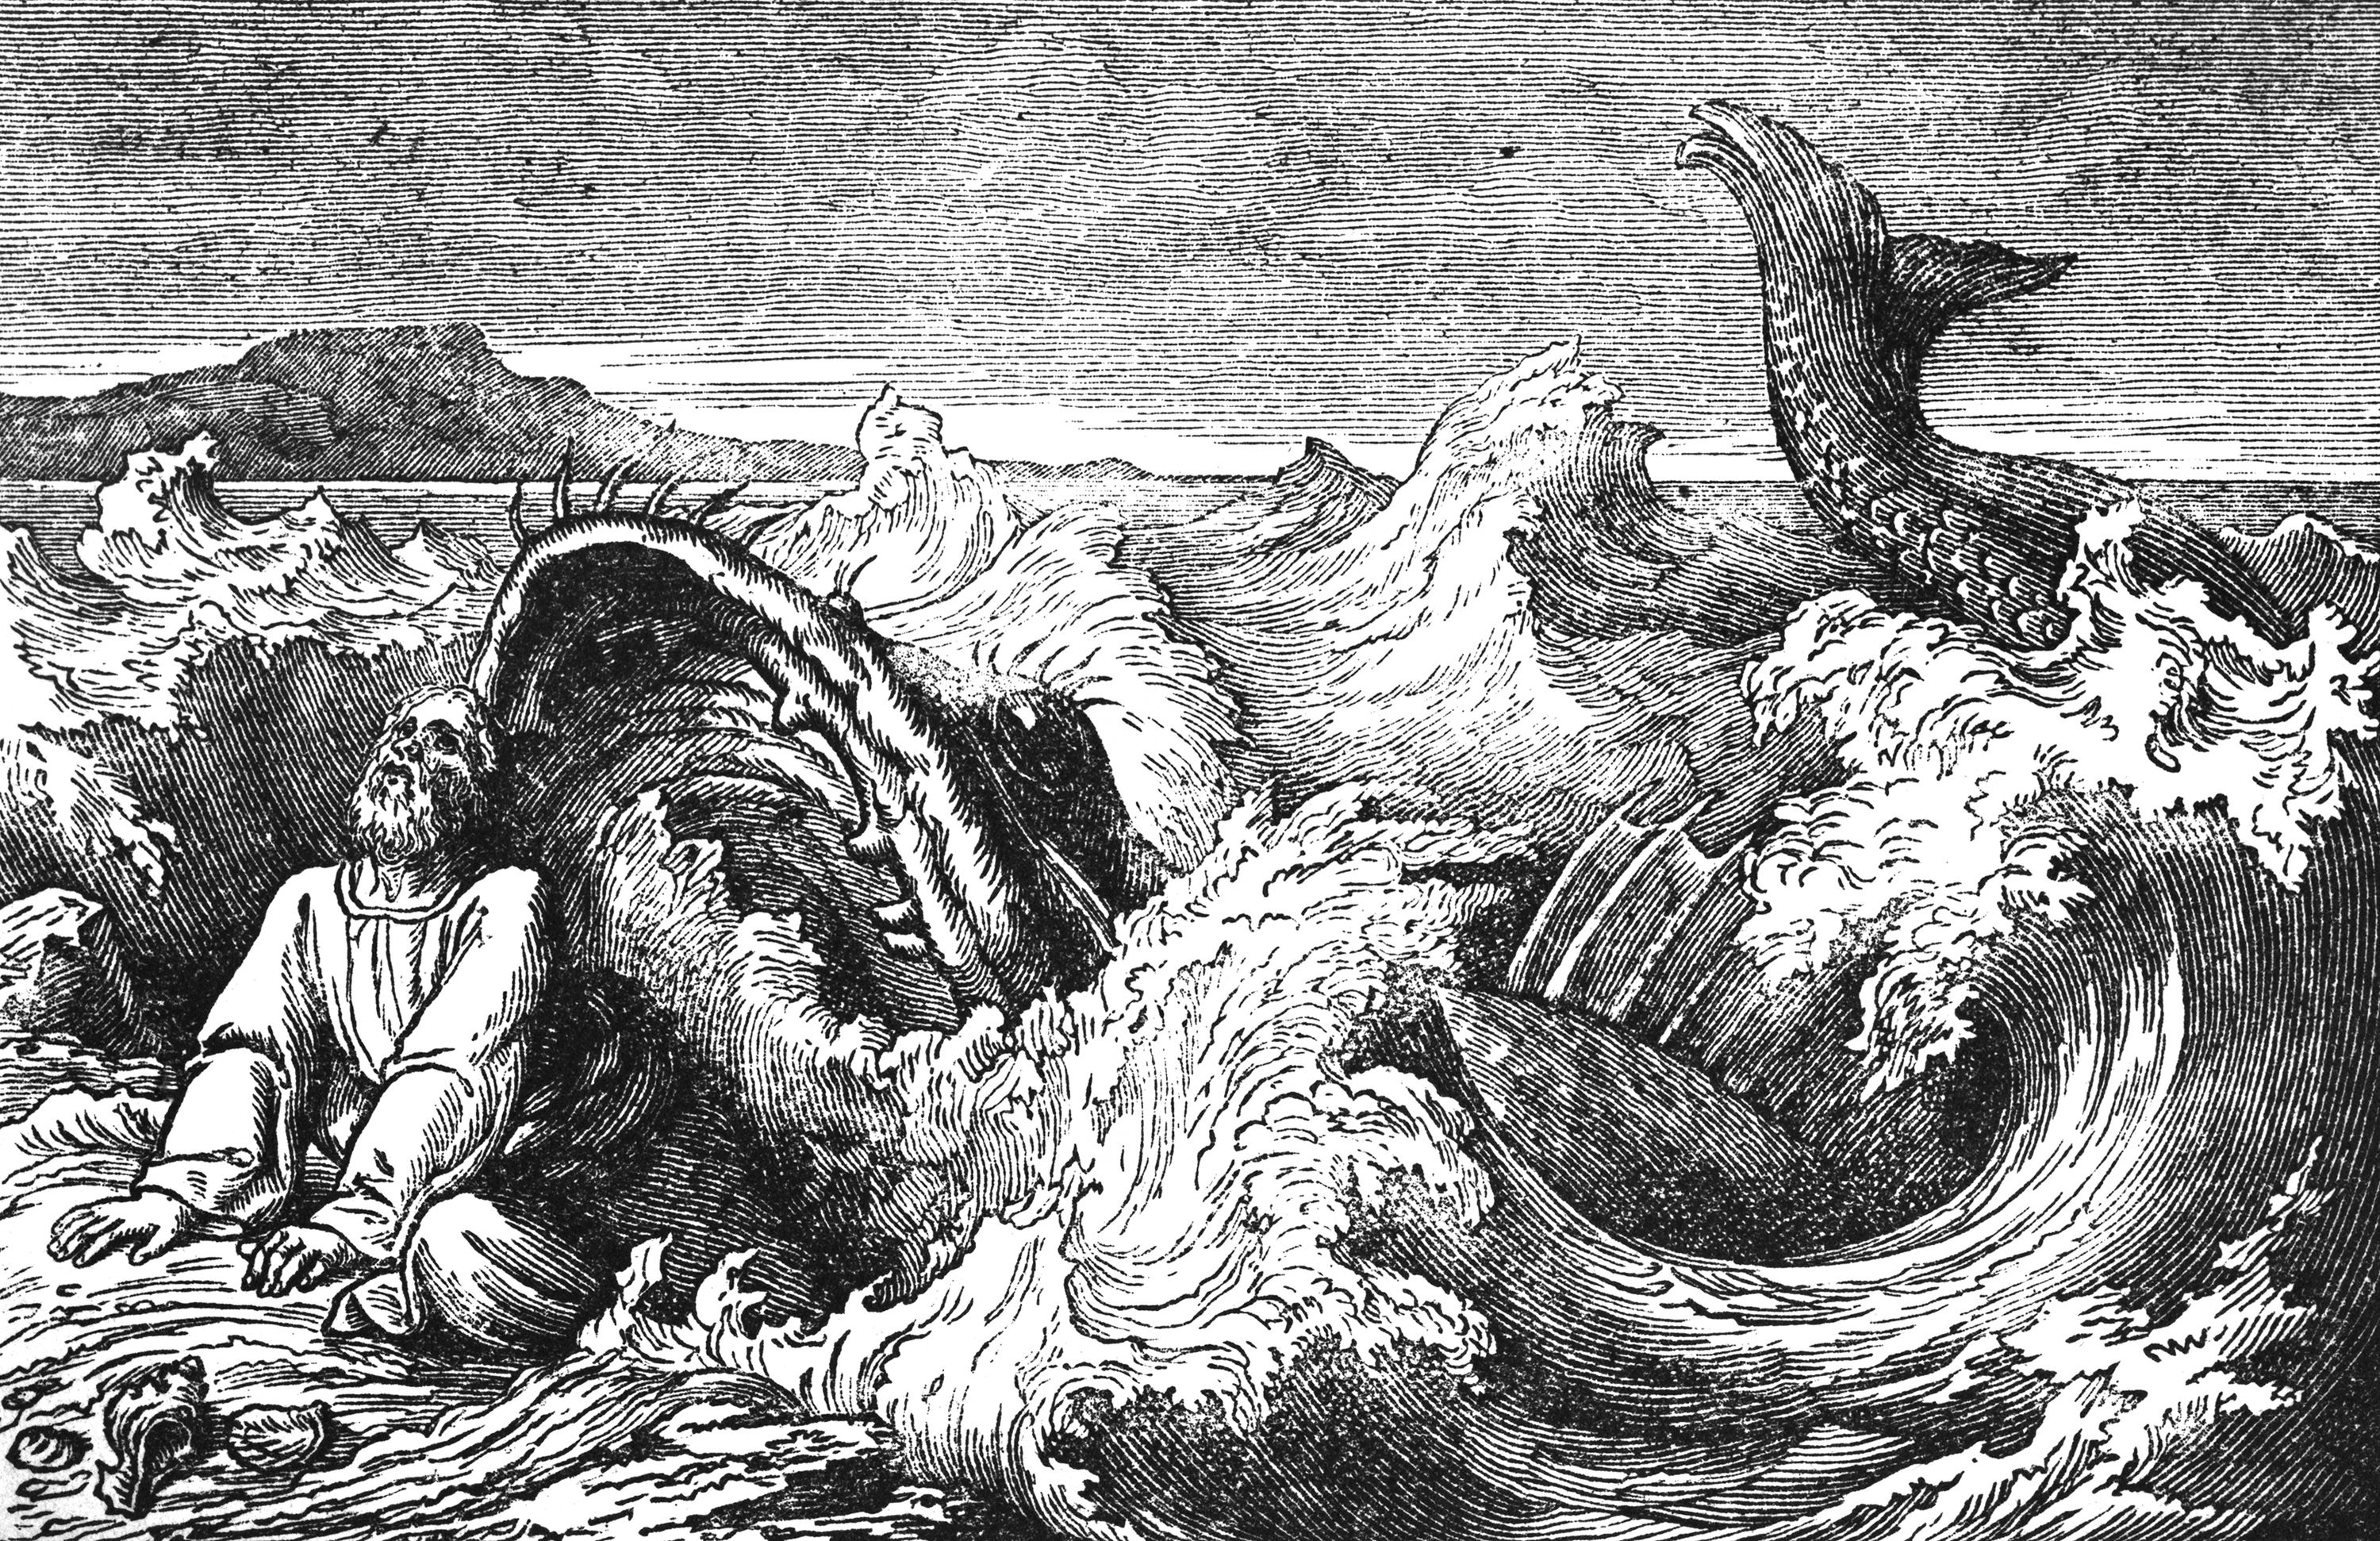 An illustration of the Bible story Jonah Cast Out by the Big Fish